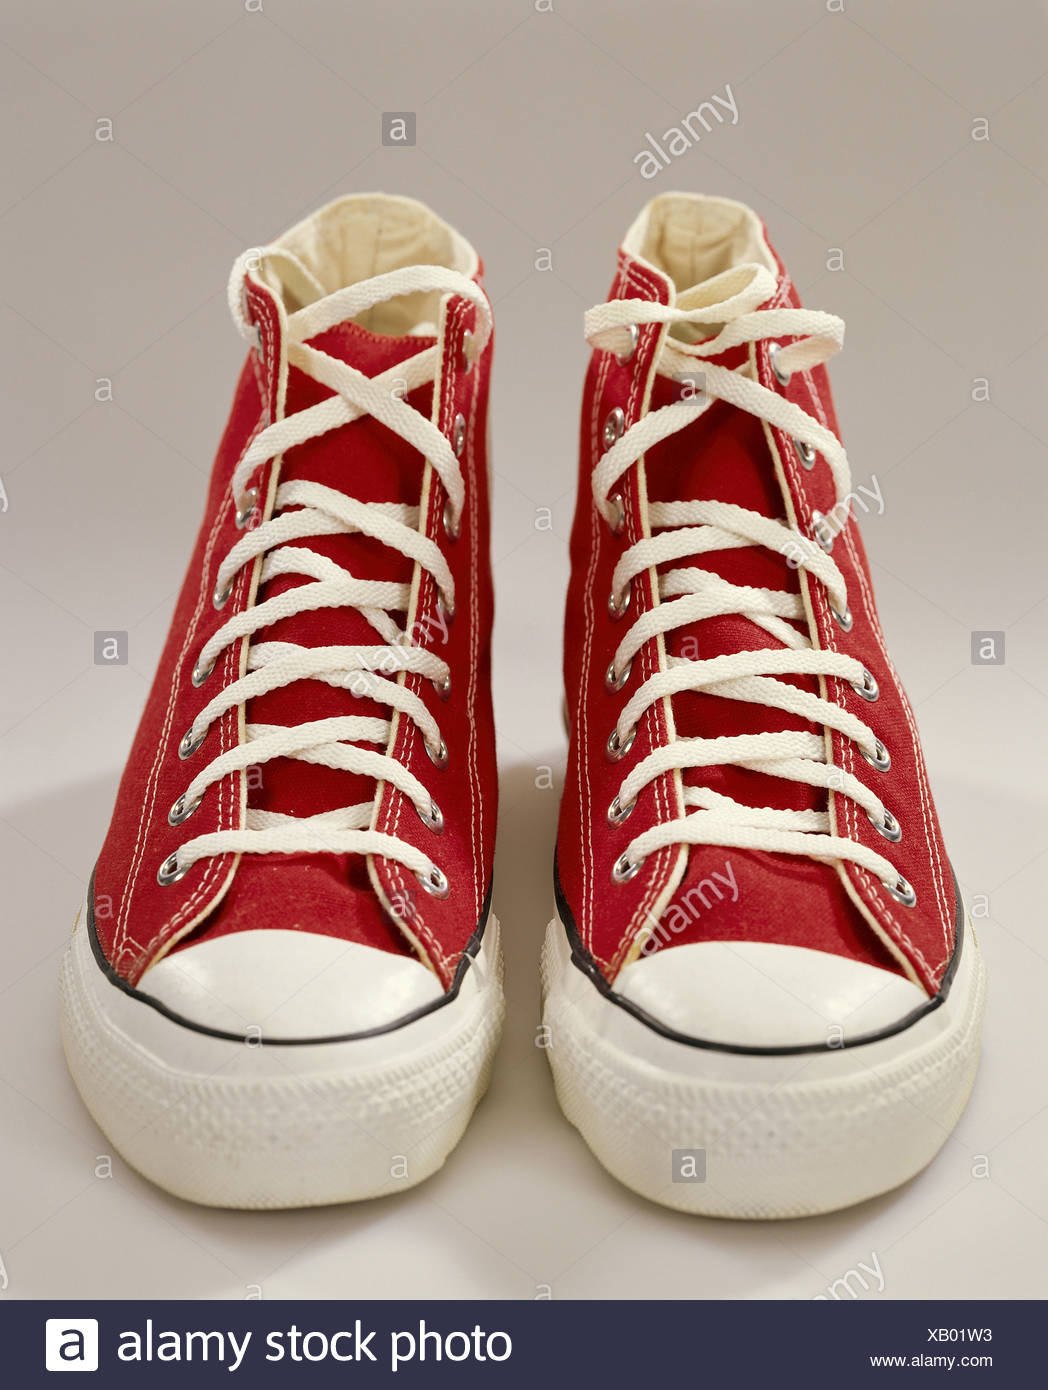 71eae8793692 Sneakers red footwear shoes athletically sneakers gym shoes linen-shoes  trendy studio Converse allstar sneakers